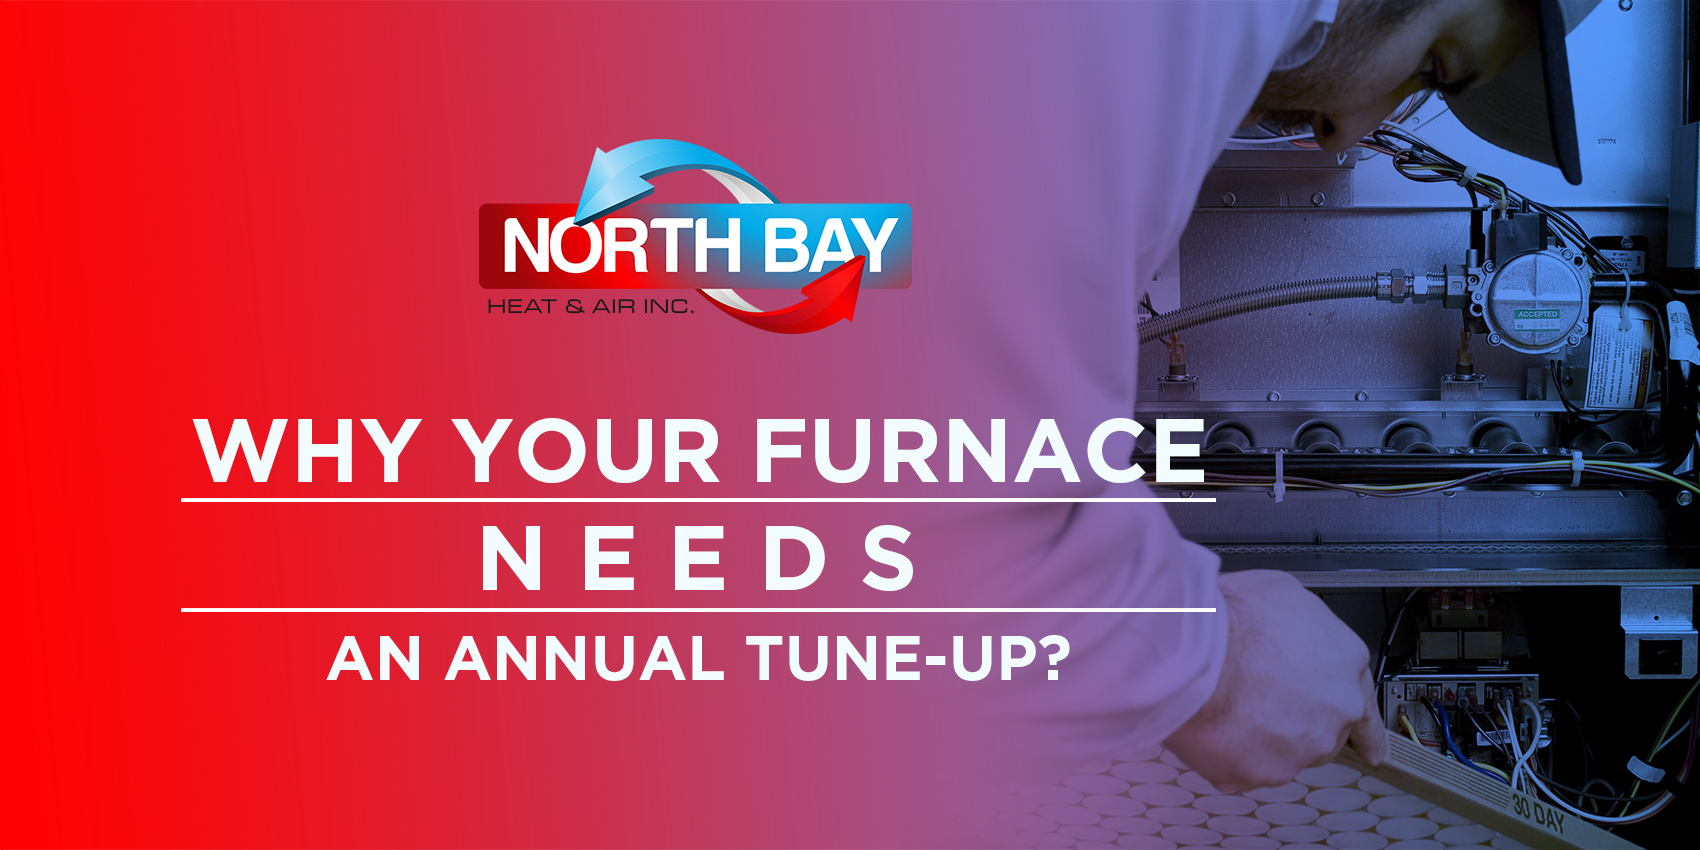 Why Your Furnace Needs An Annual Tune-Up?